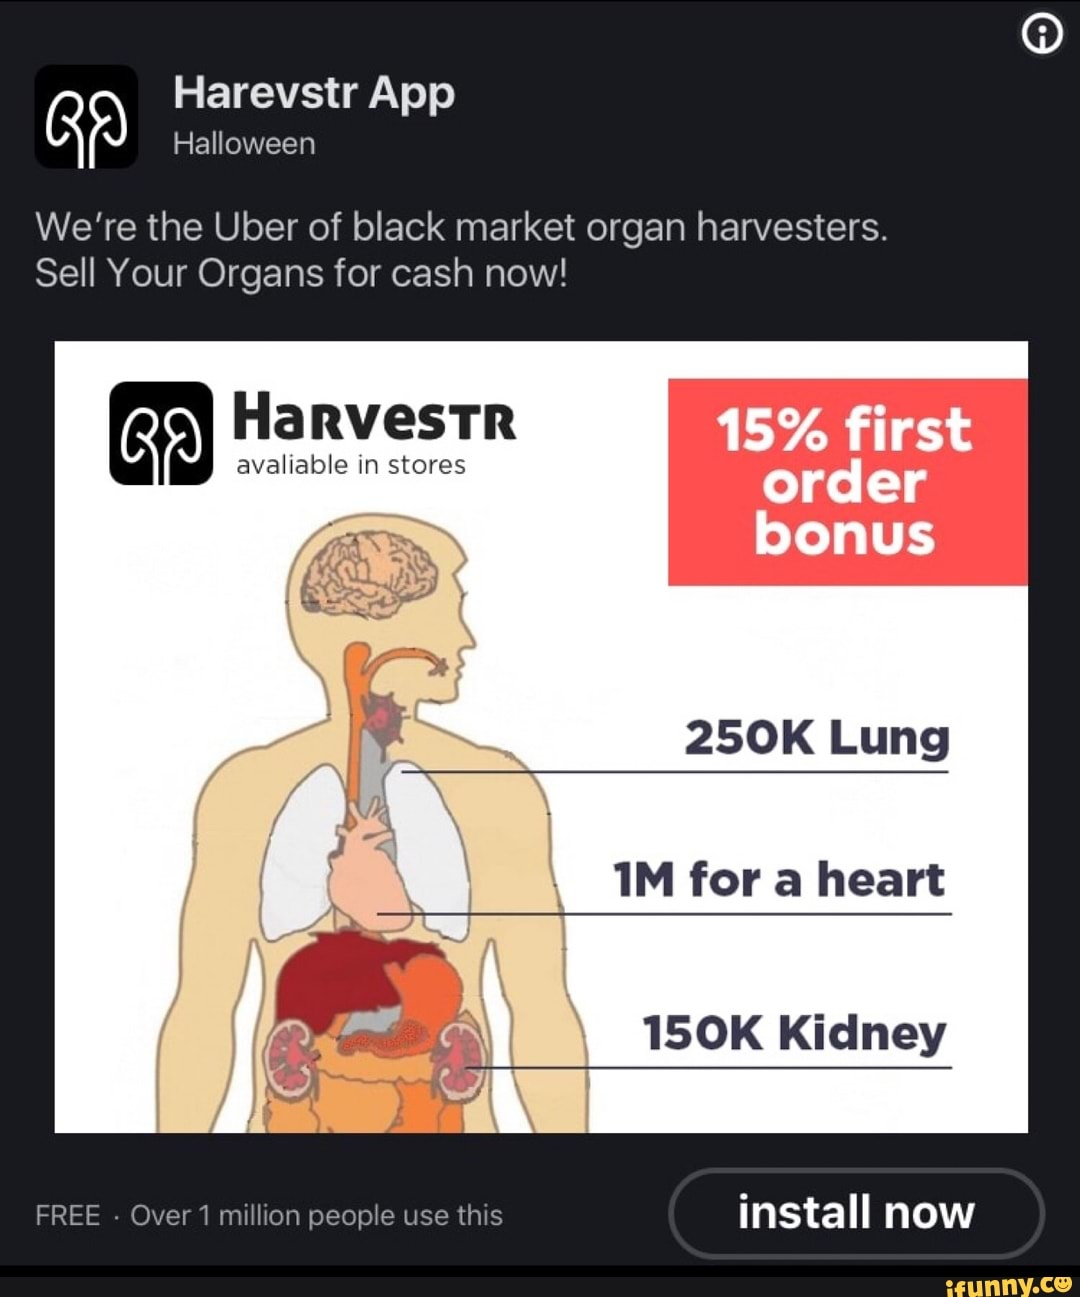 We're the Uber of black market organ harvesters  Sell Your